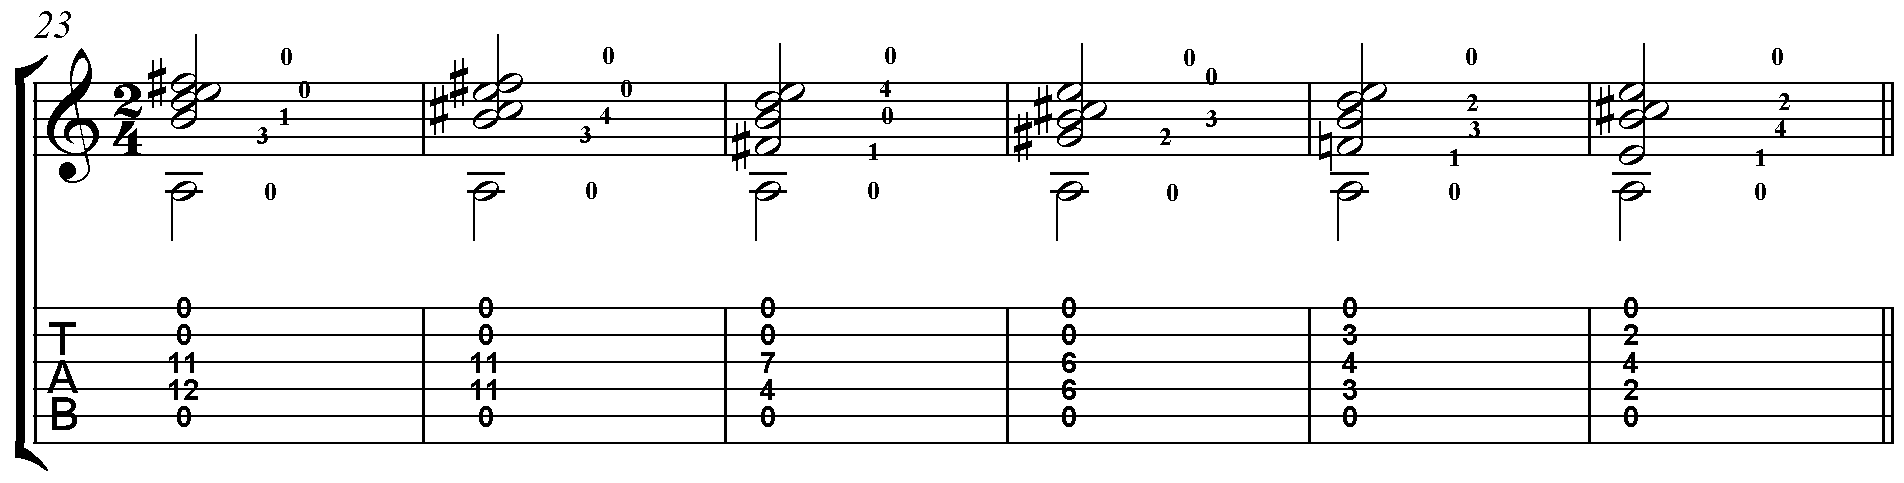 Approaching Etude No 6 By Leo Brouwer